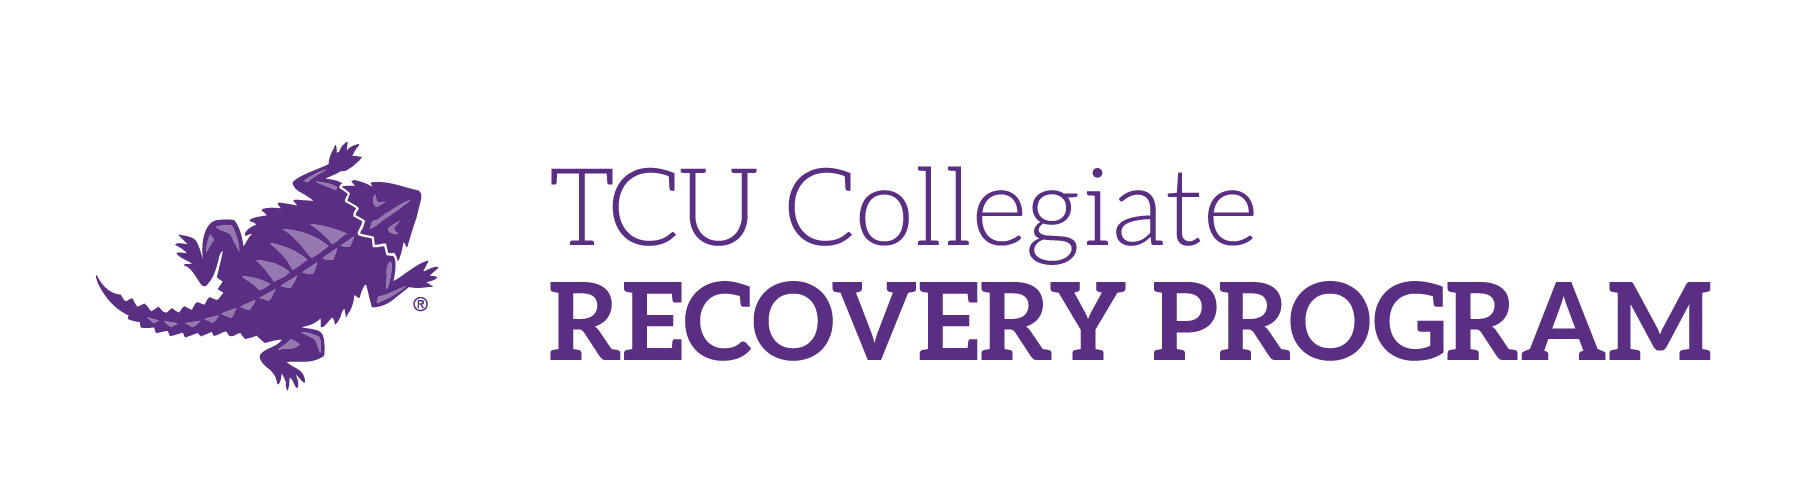 TCU Collegiate Recovery Program